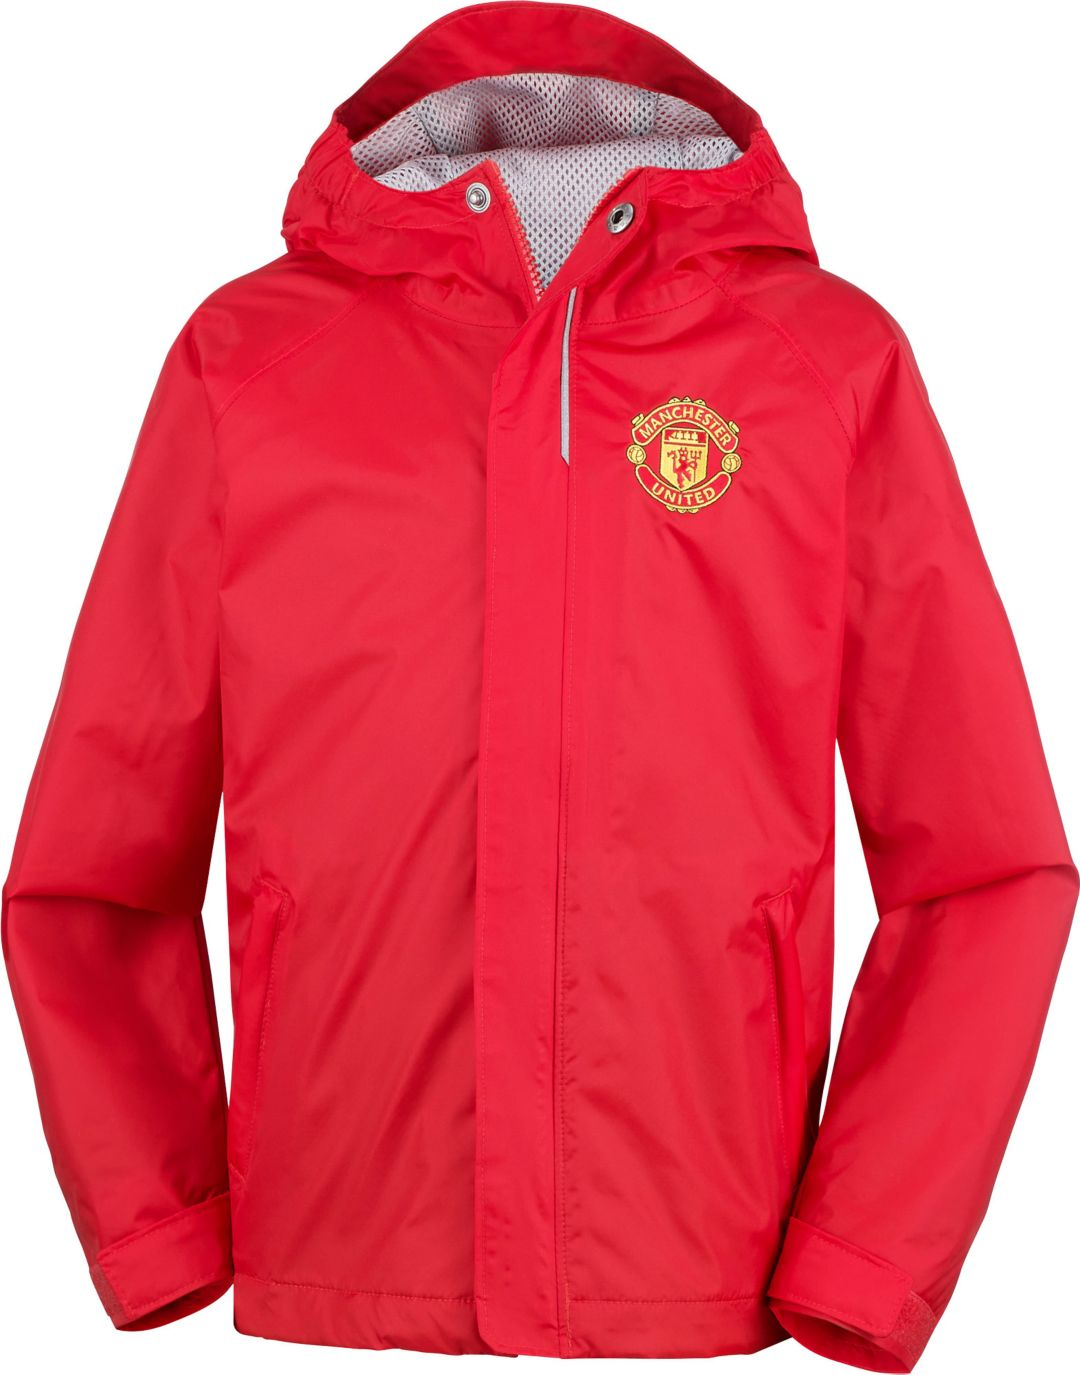 100% authentic fd0a7 9c8f0 Columbia Youth Manchester United Fast and Curious Red Jacket